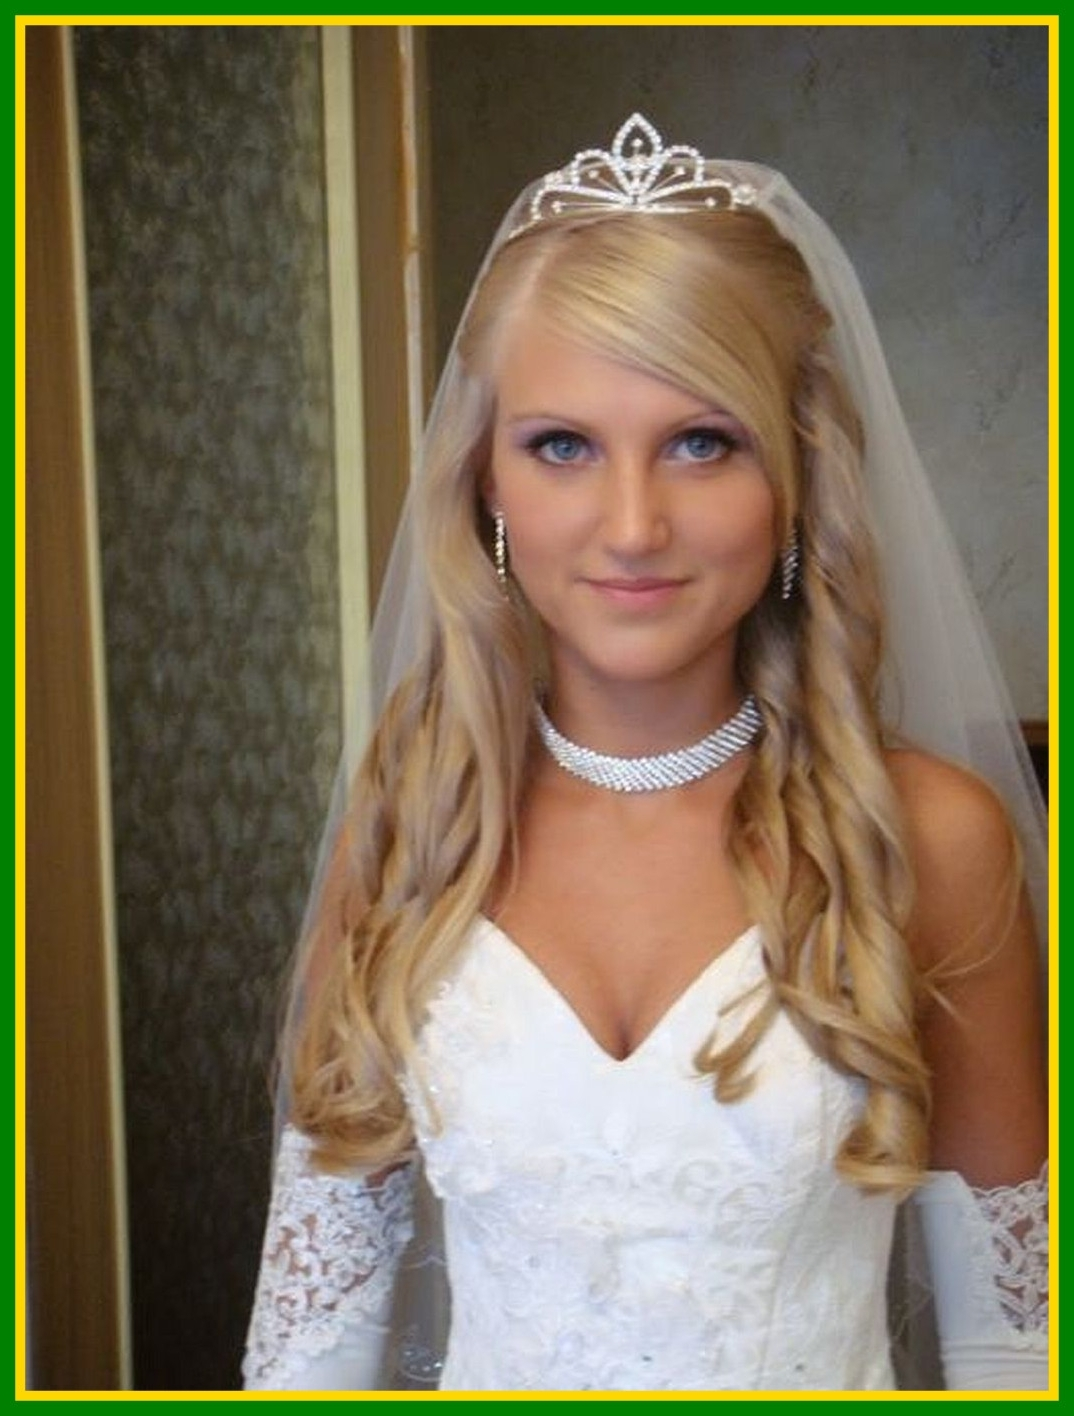 Inspiring Wedding Hair Down With Veil Ideas And Pict For Hairstyles For Well Known Wedding Hairstyles With Tiara And Veil (View 5 of 15)